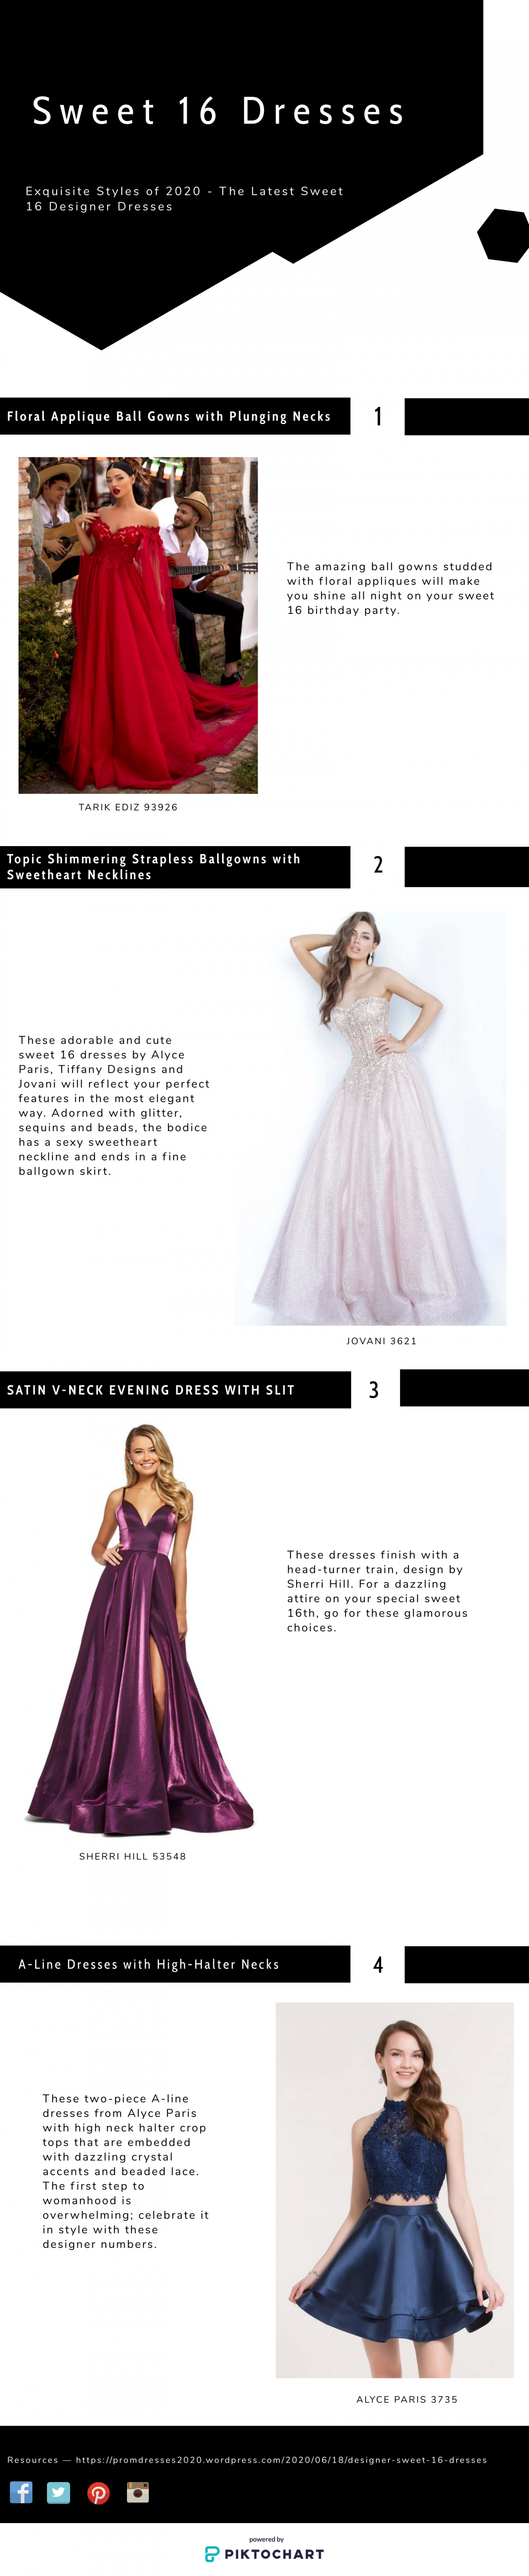 The Latest Sweet 16 Designer Dresses Infographic